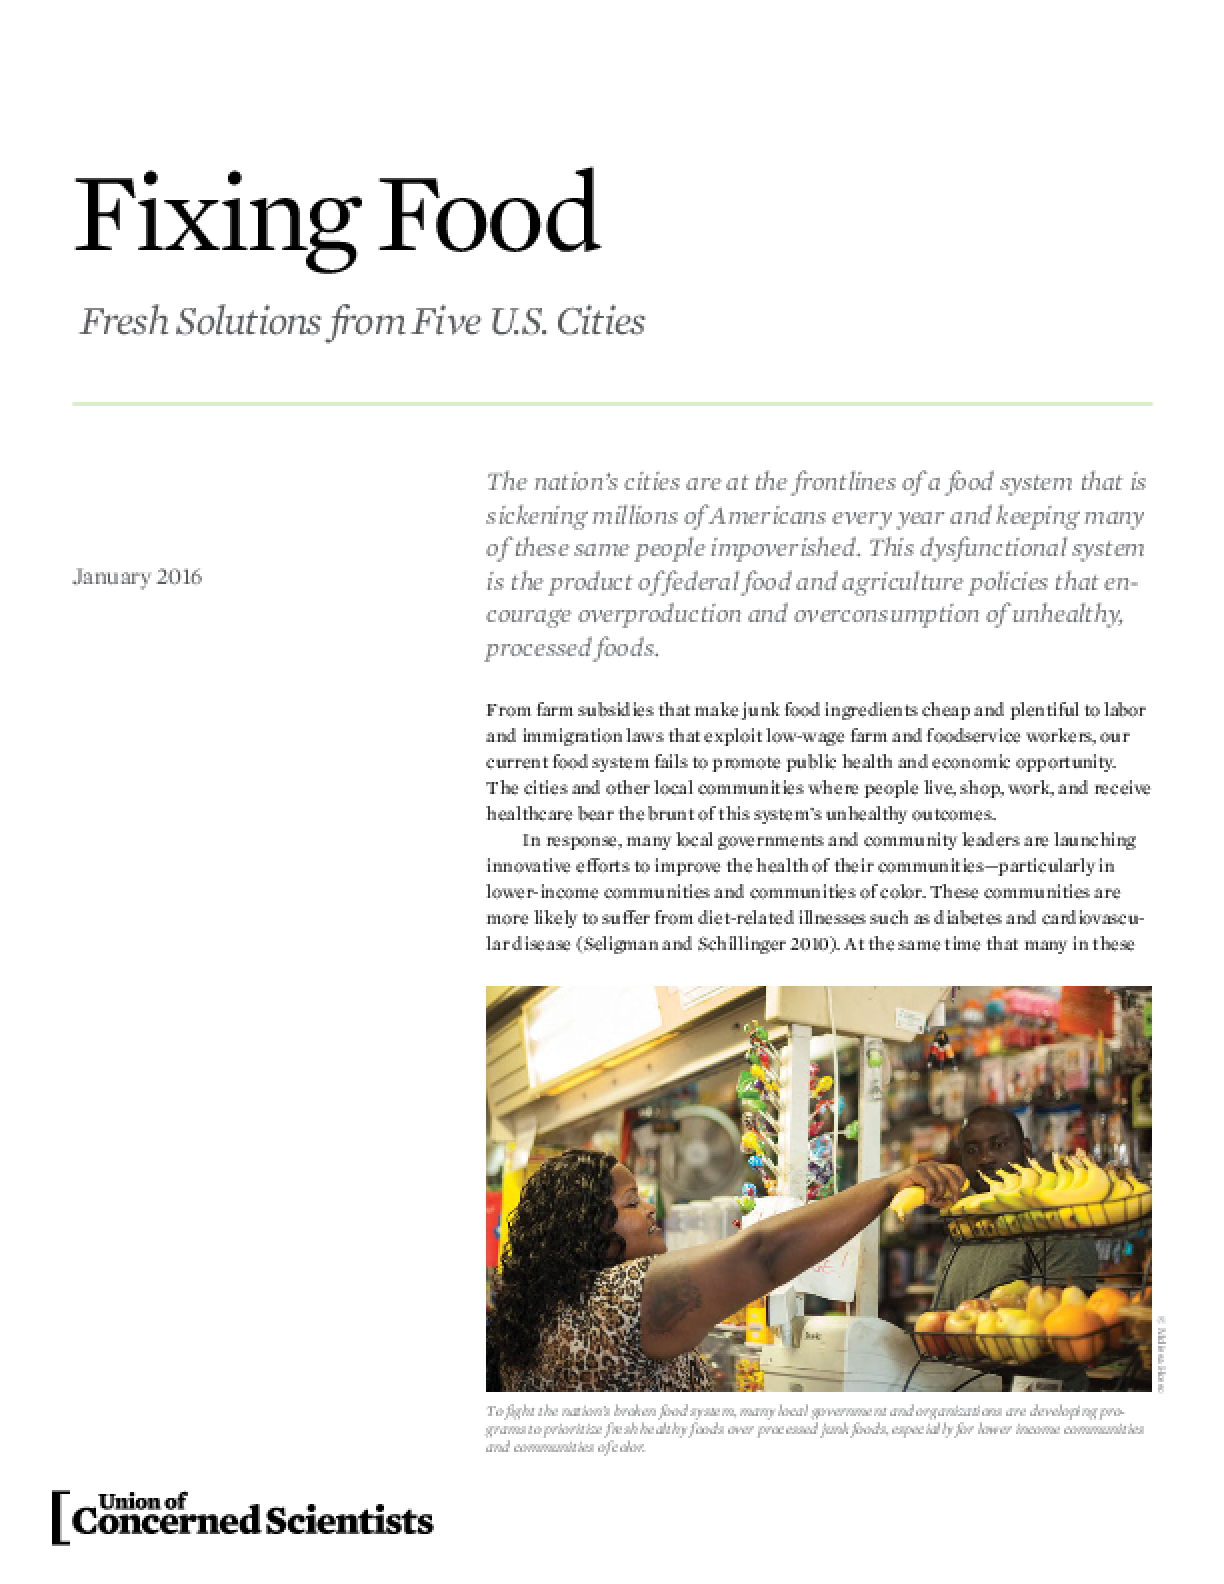 Fixing Food: Fresh Solutions from Five U.S. Cities